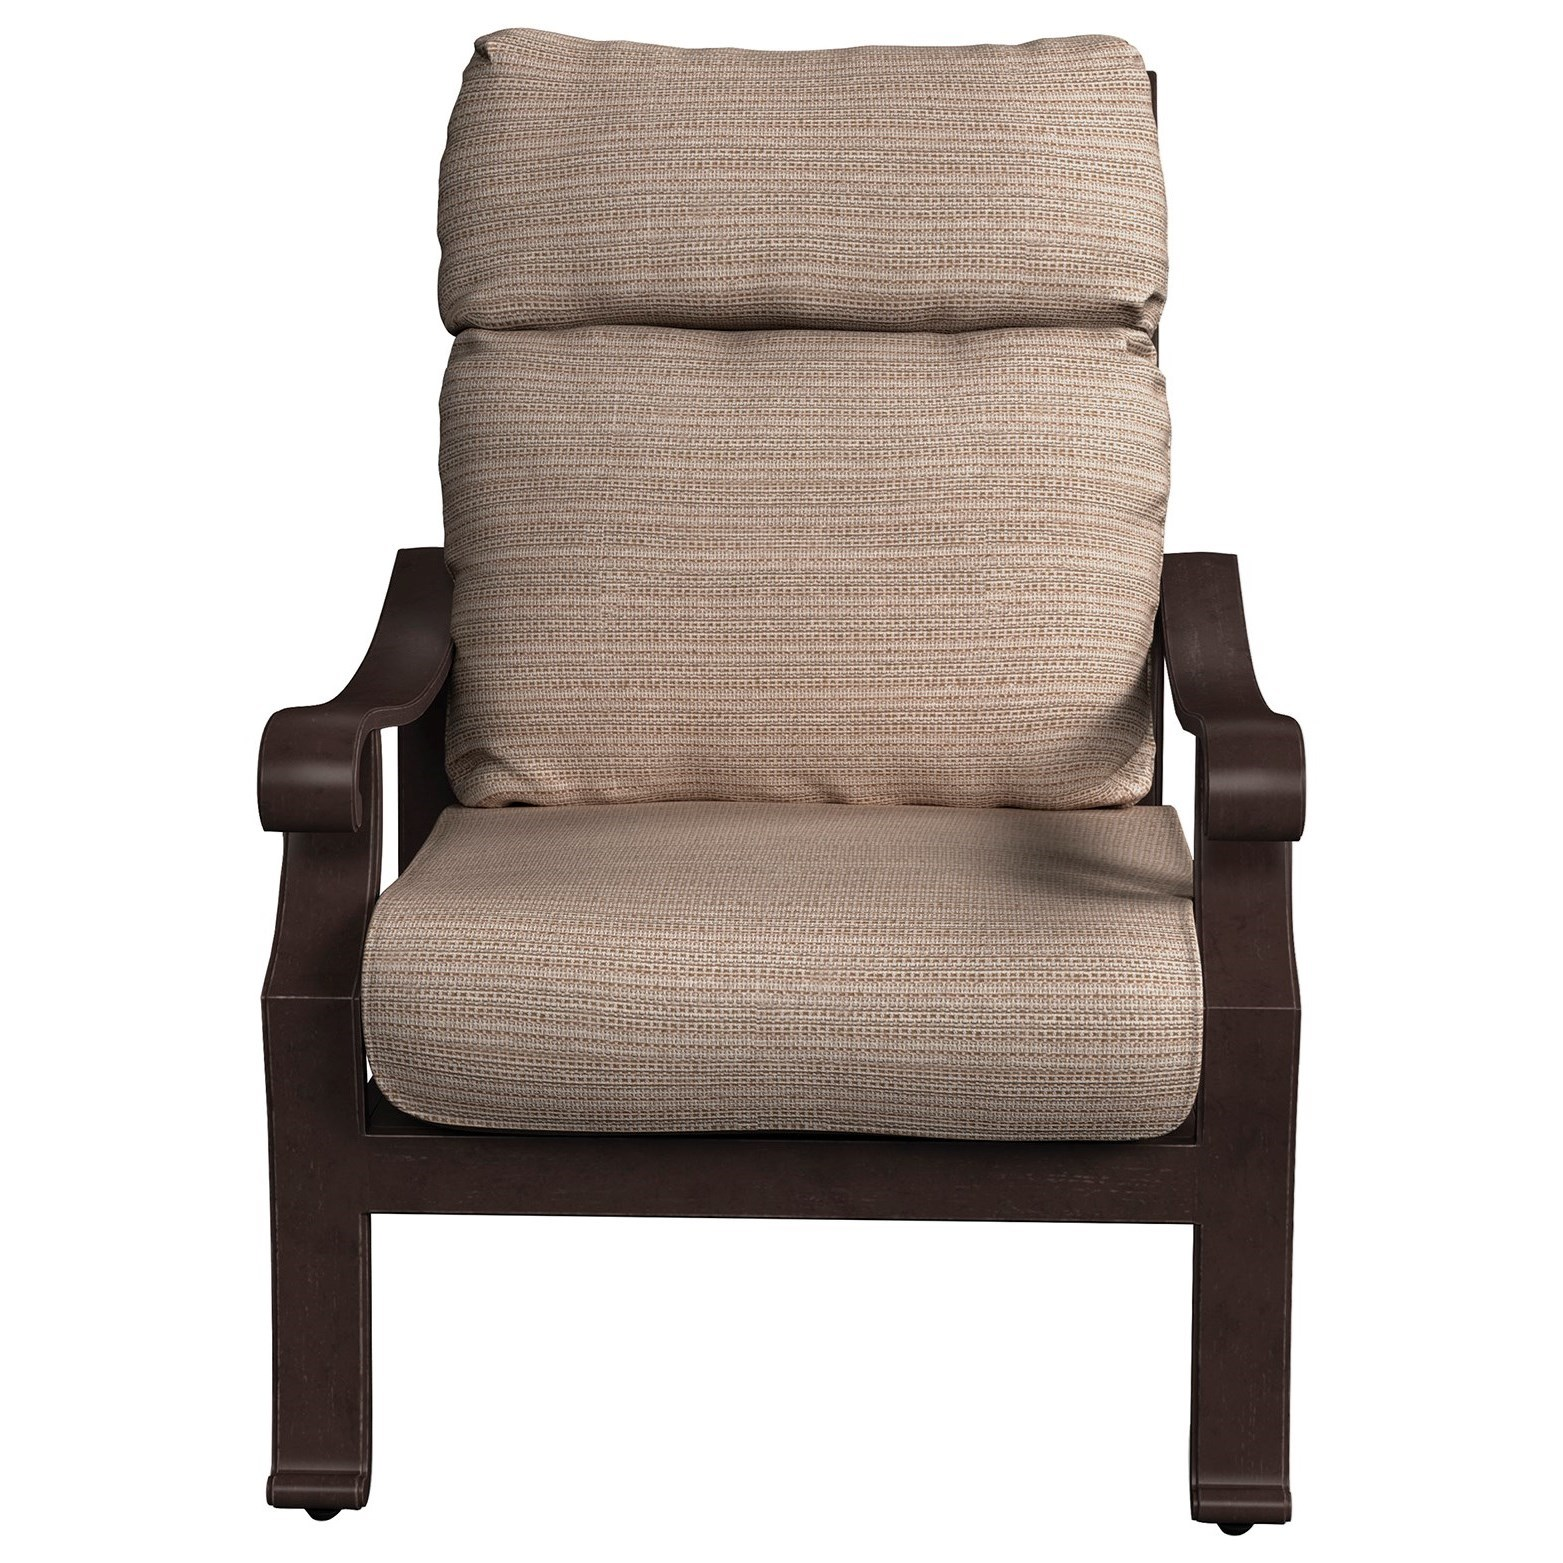 Signature Design by Ashley Chestnut Ridge Lounge Chair with Cushion - Item Number: P445-820